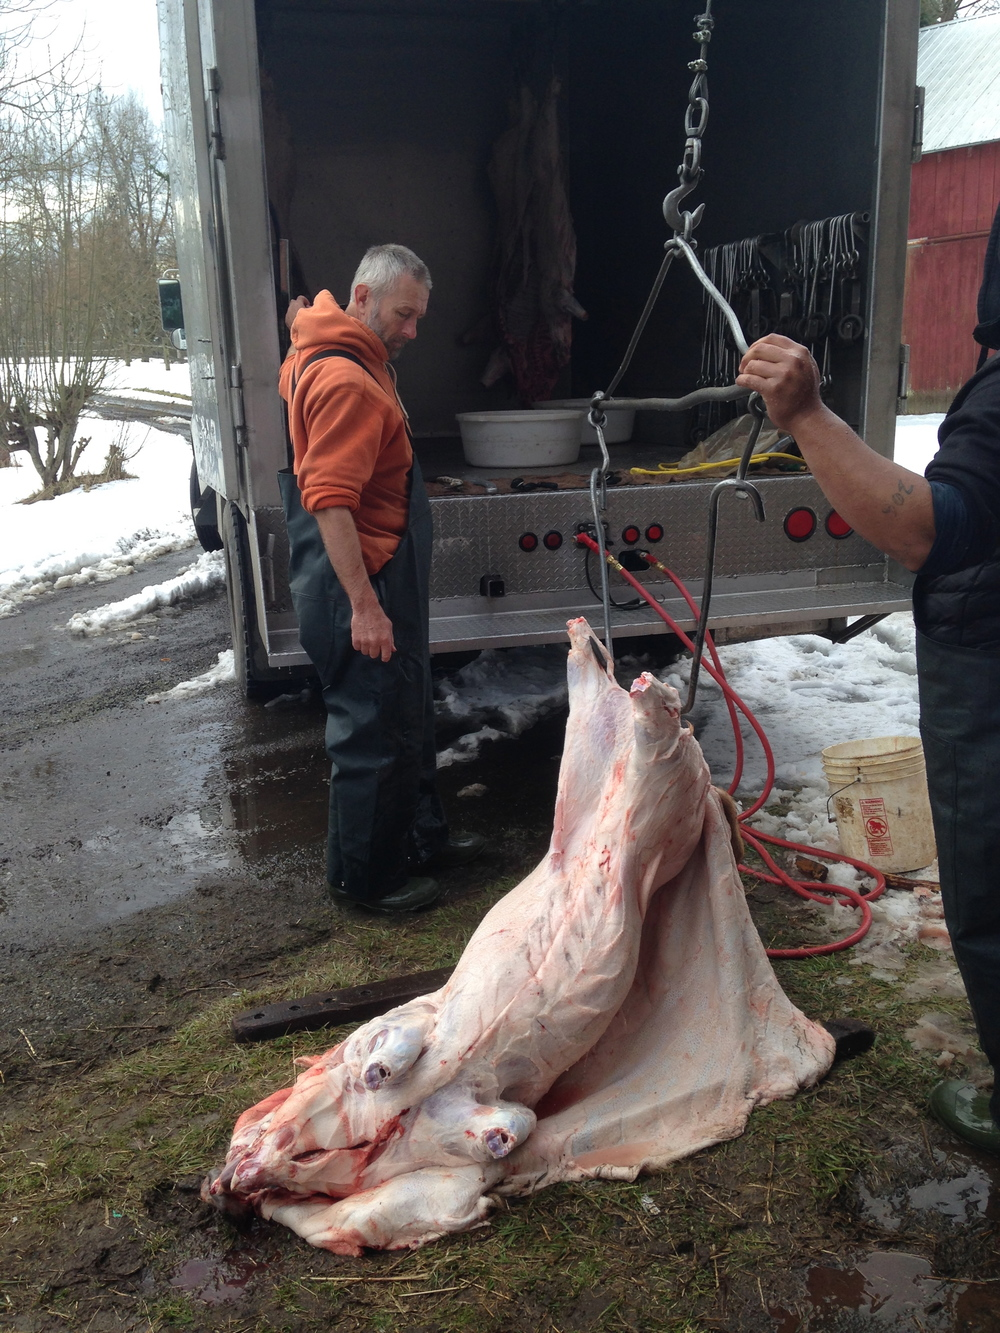 Hauling the pig up